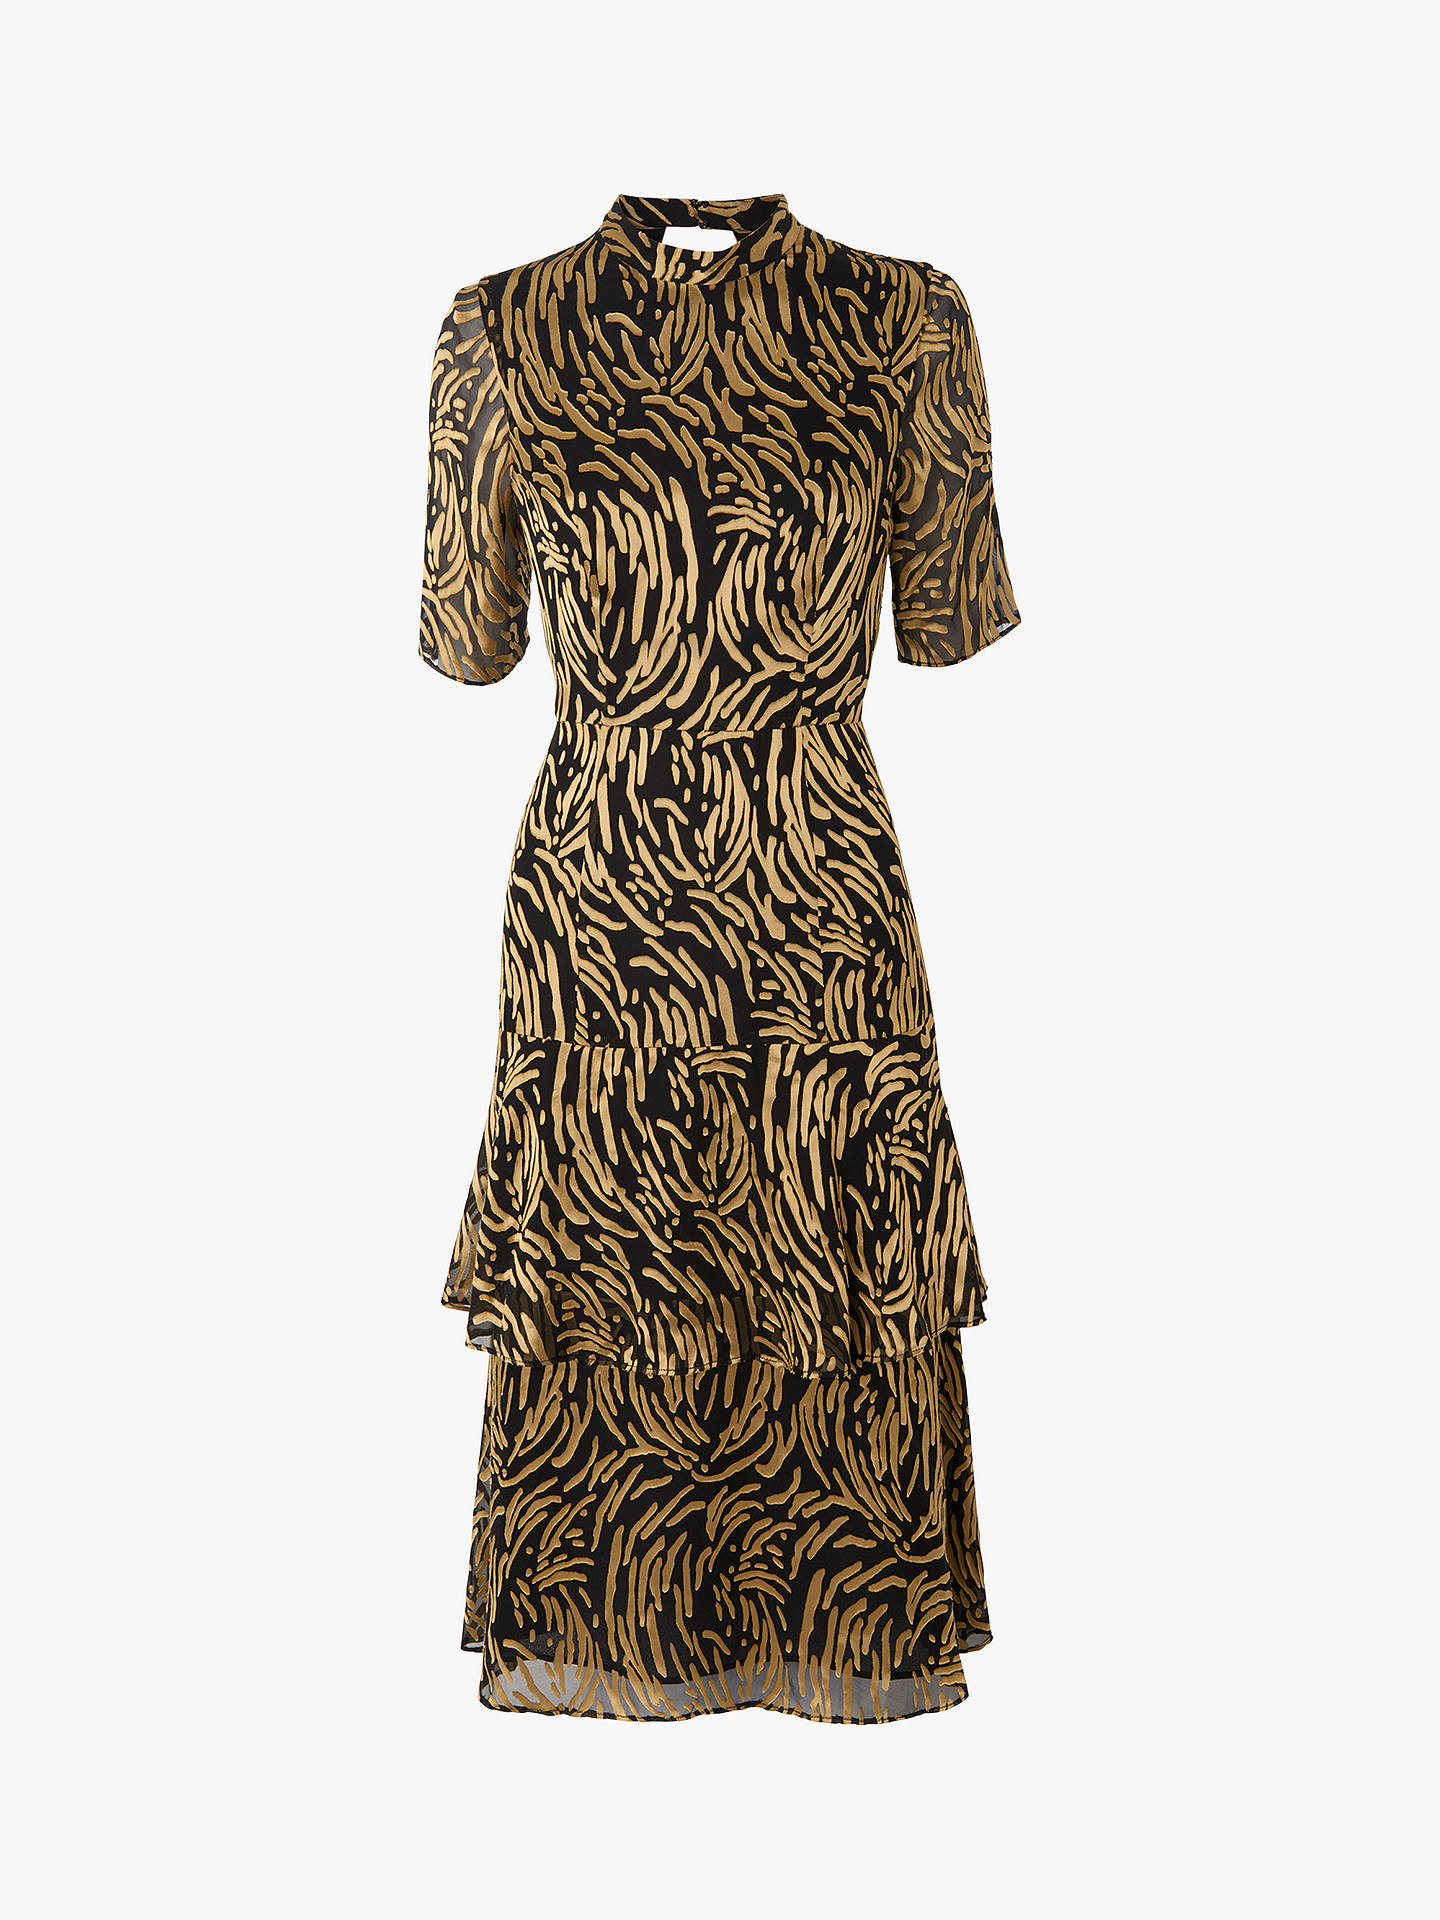 992da4fa0224 ... Buy Whistles Ivanna Reed Devore Frill Dress, Gold/Multi, 14 Online at  johnlewis